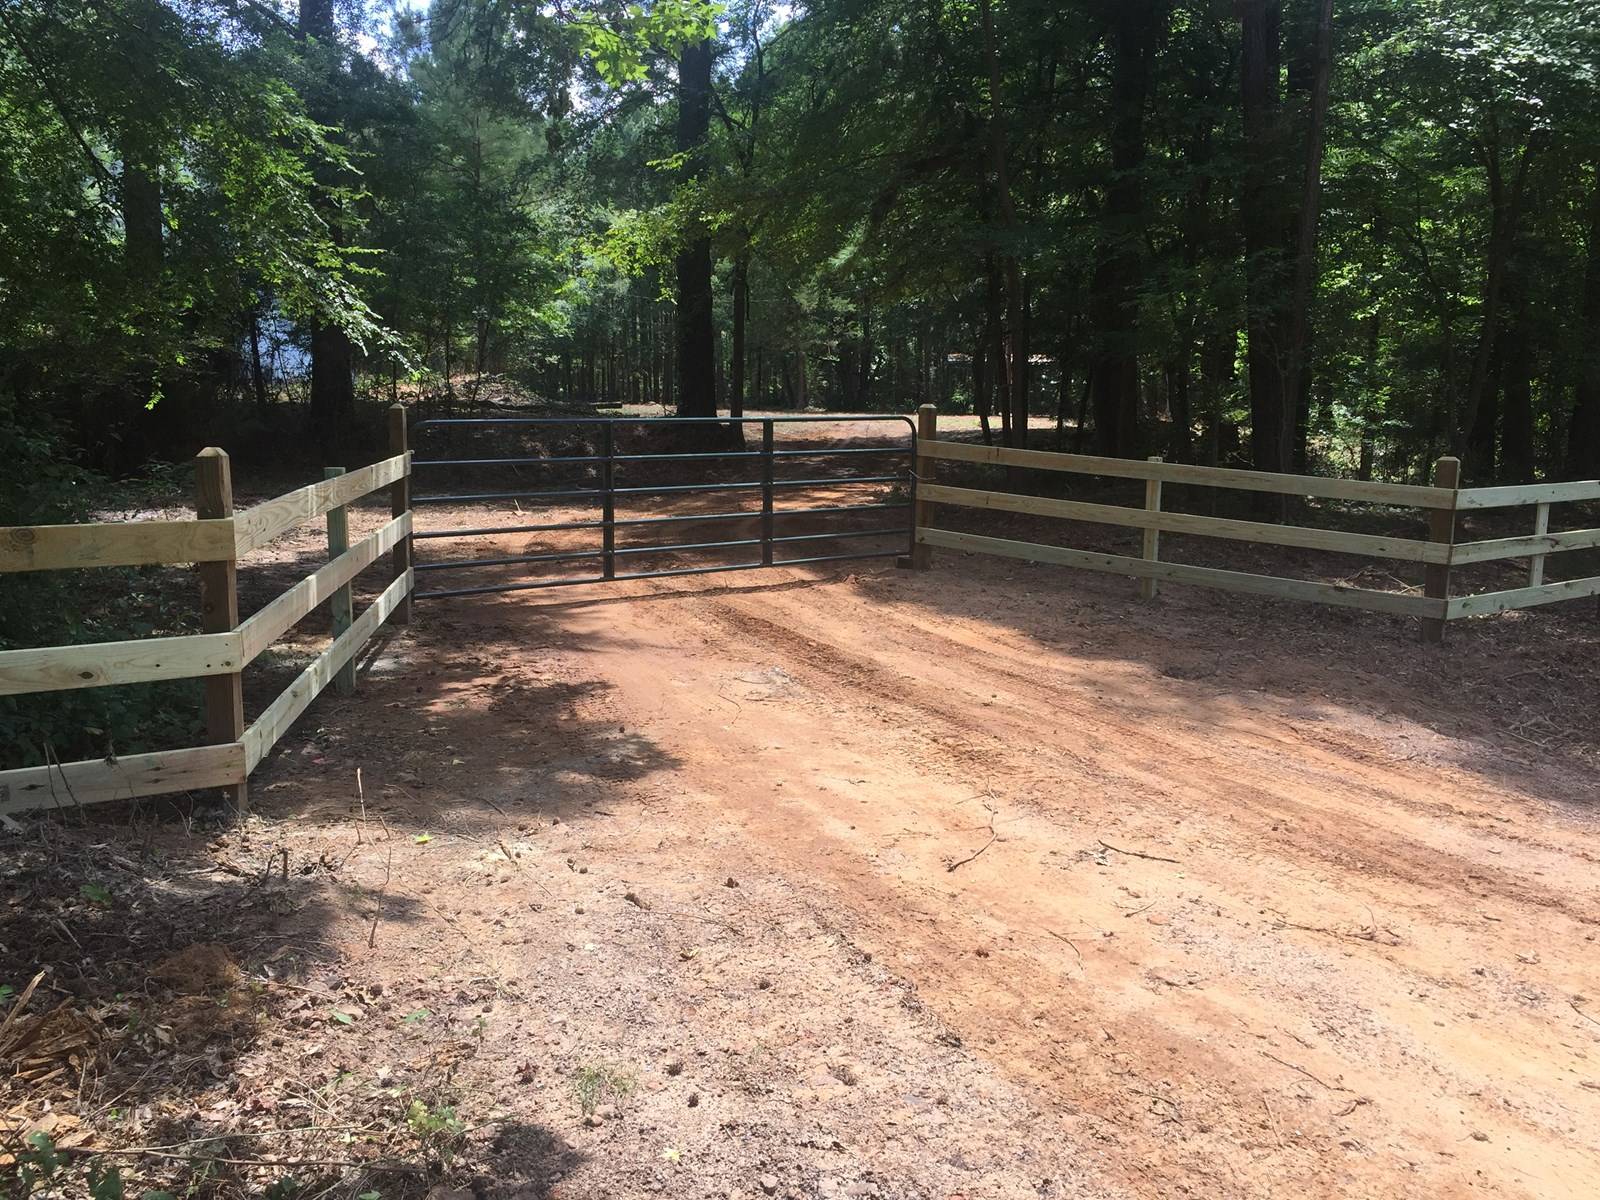 Land for Sale, New Diana School District, Heavily wooded